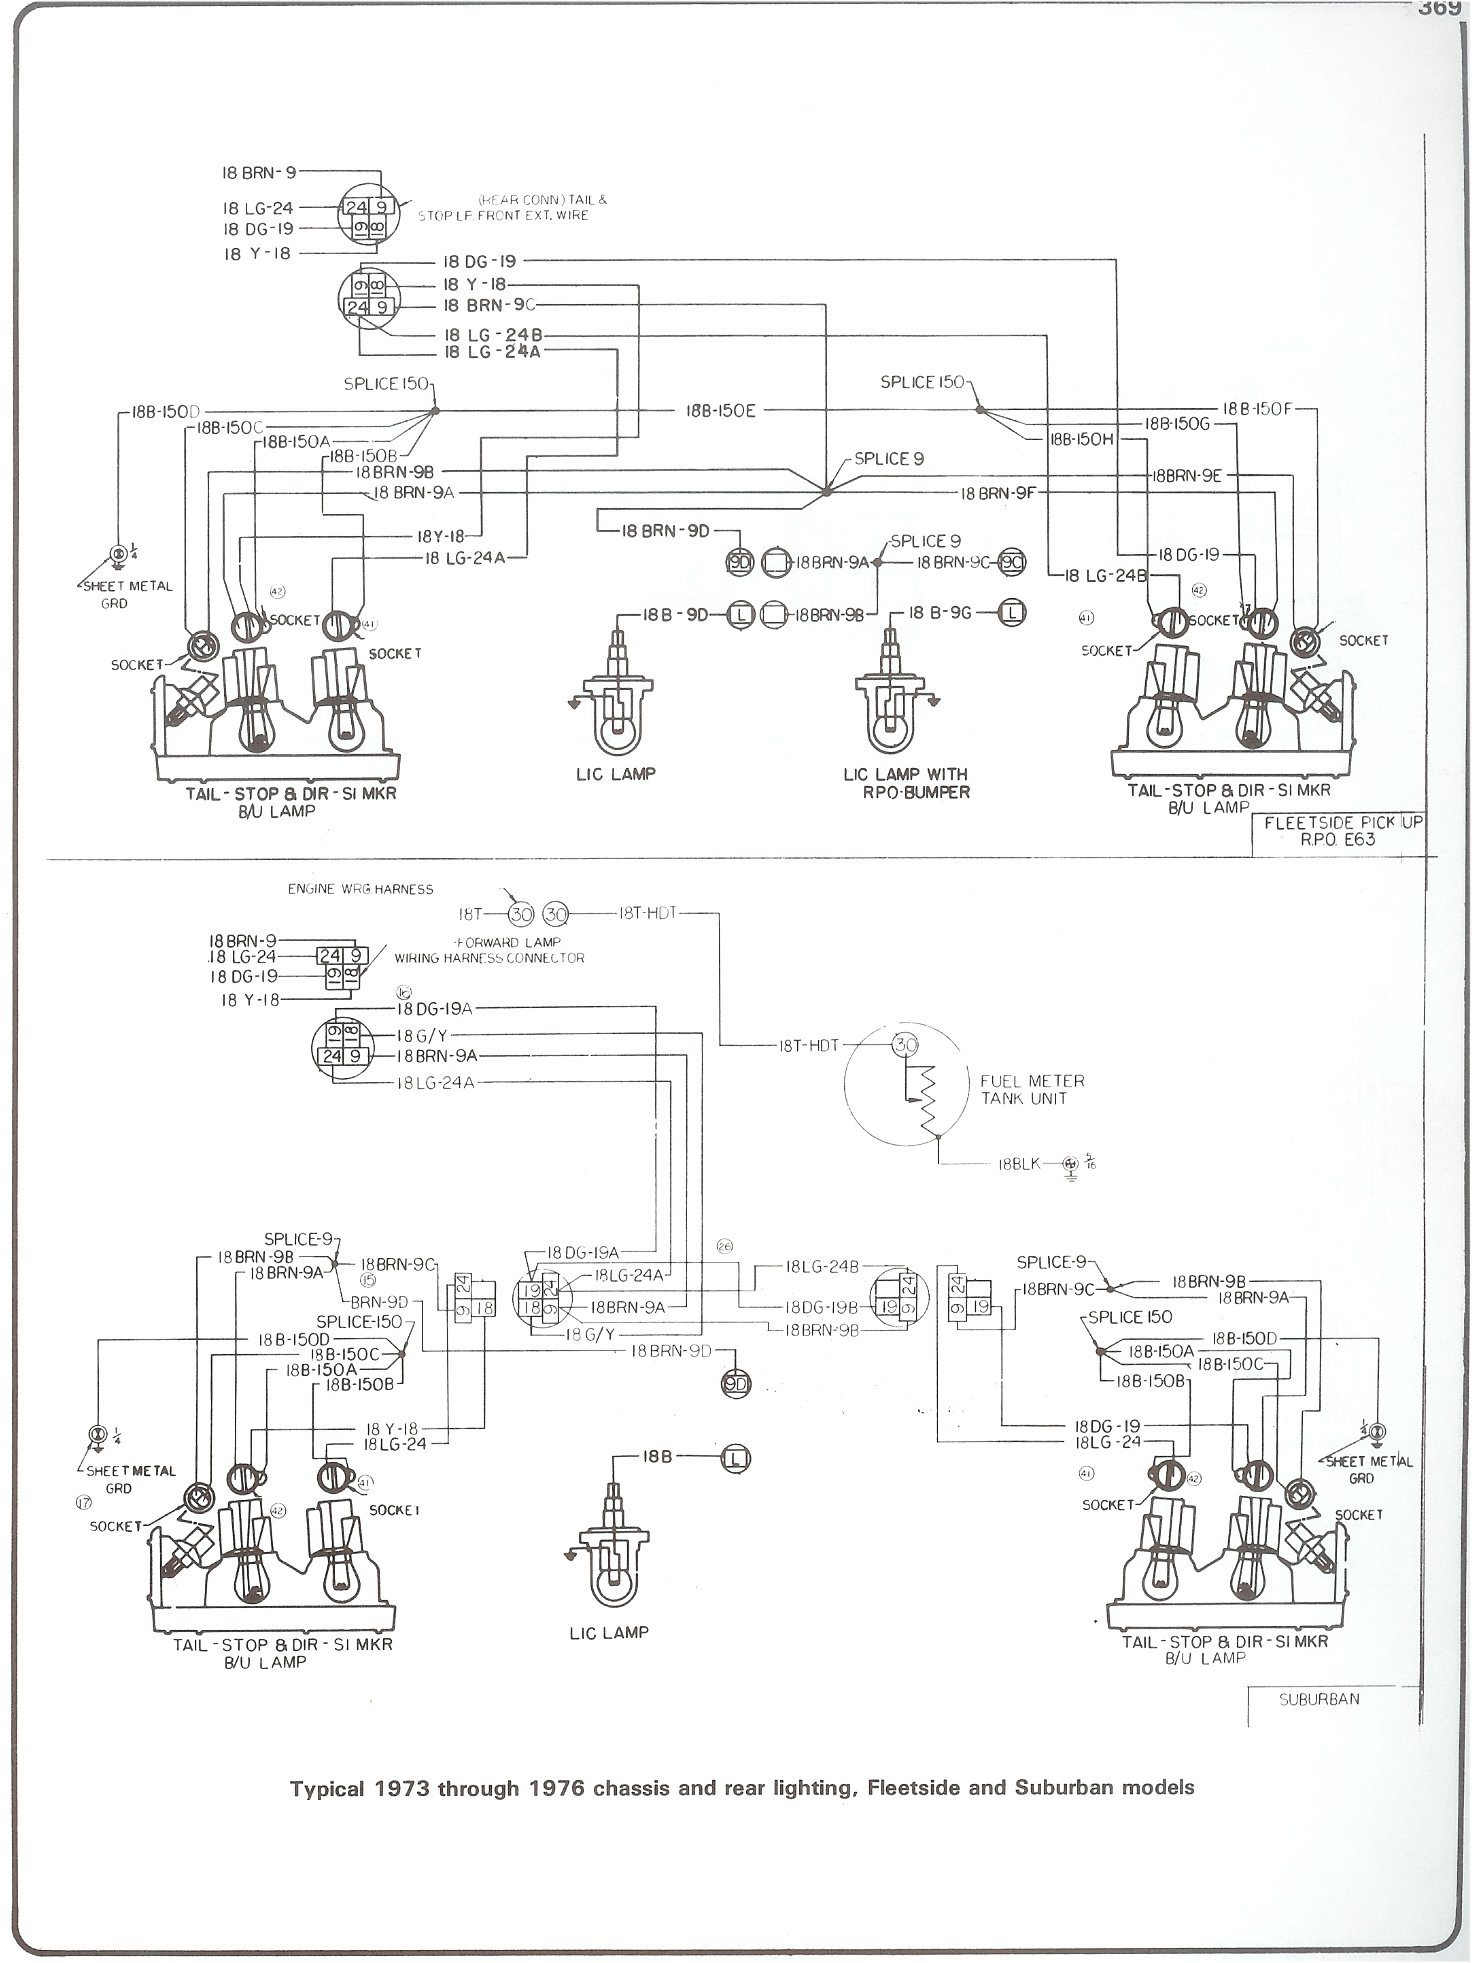 94 chevy truck wiring harness diagram 1976 chevy truck wiring harness diagram 1980 c20 diesel, looking for wiper and pump diagram, or help with problems | truck forum